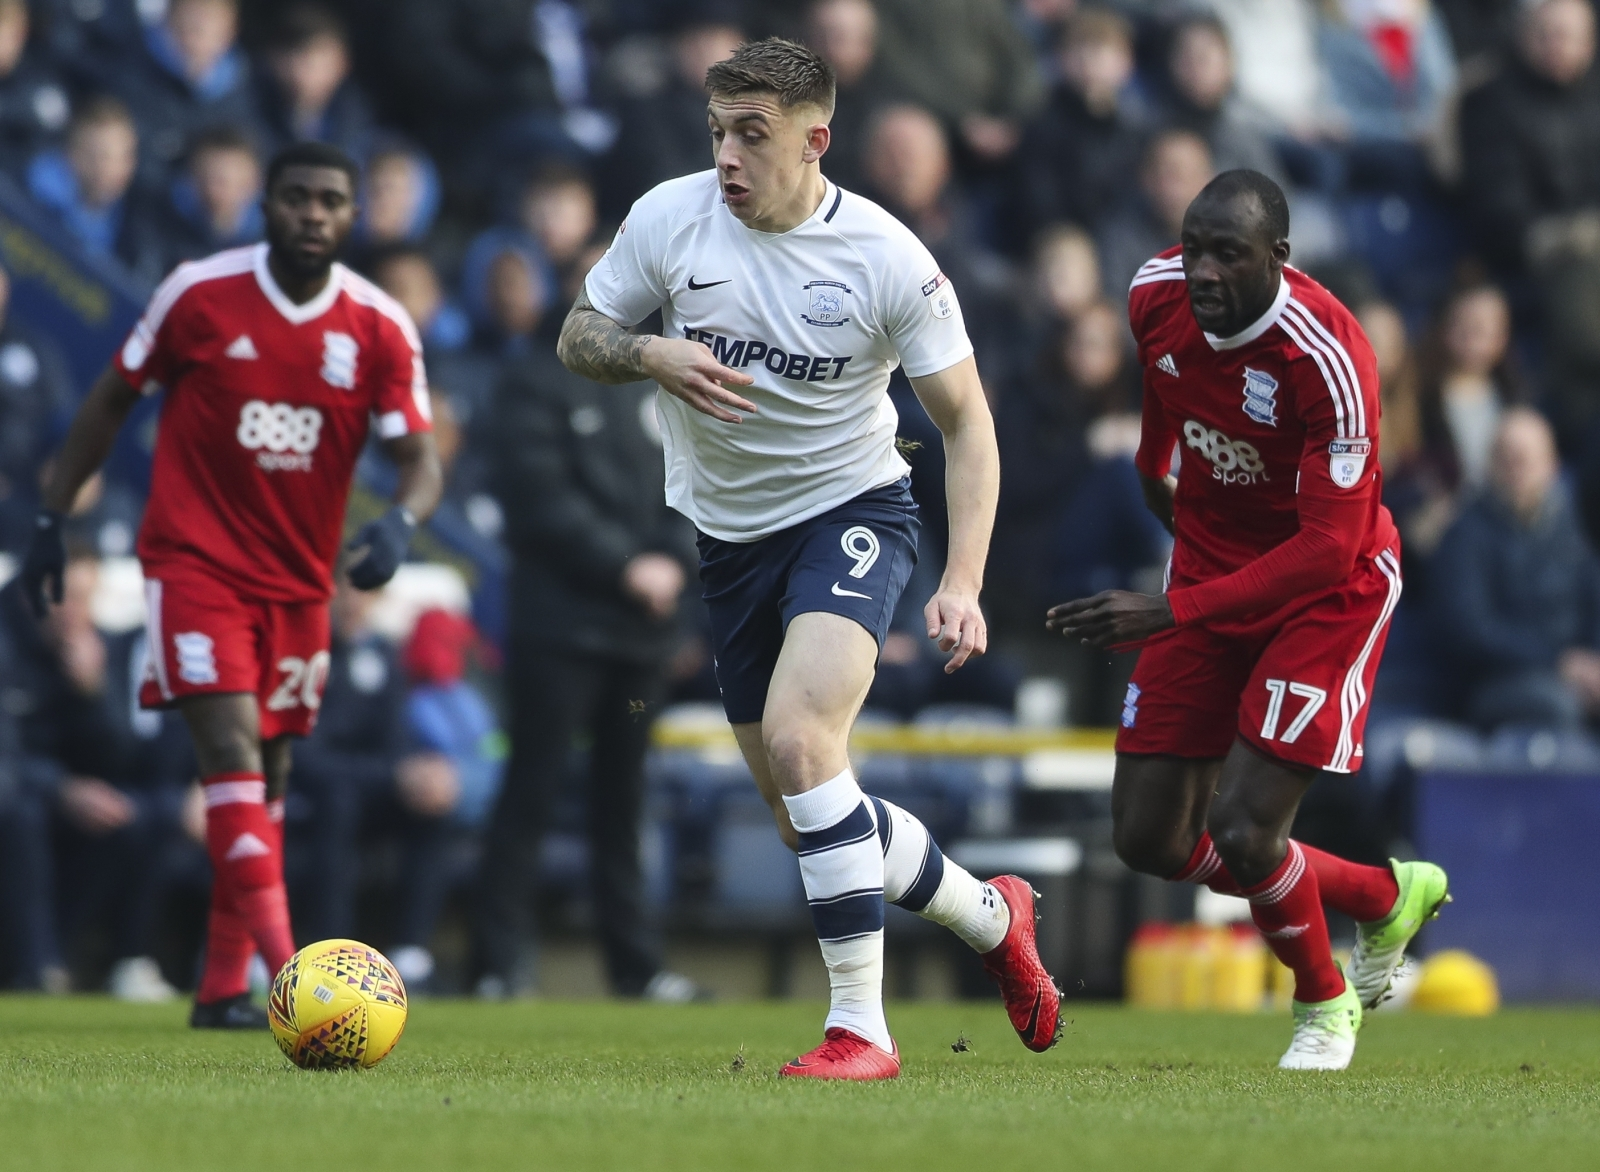 PNE have their say on Jordan Hugill speculation